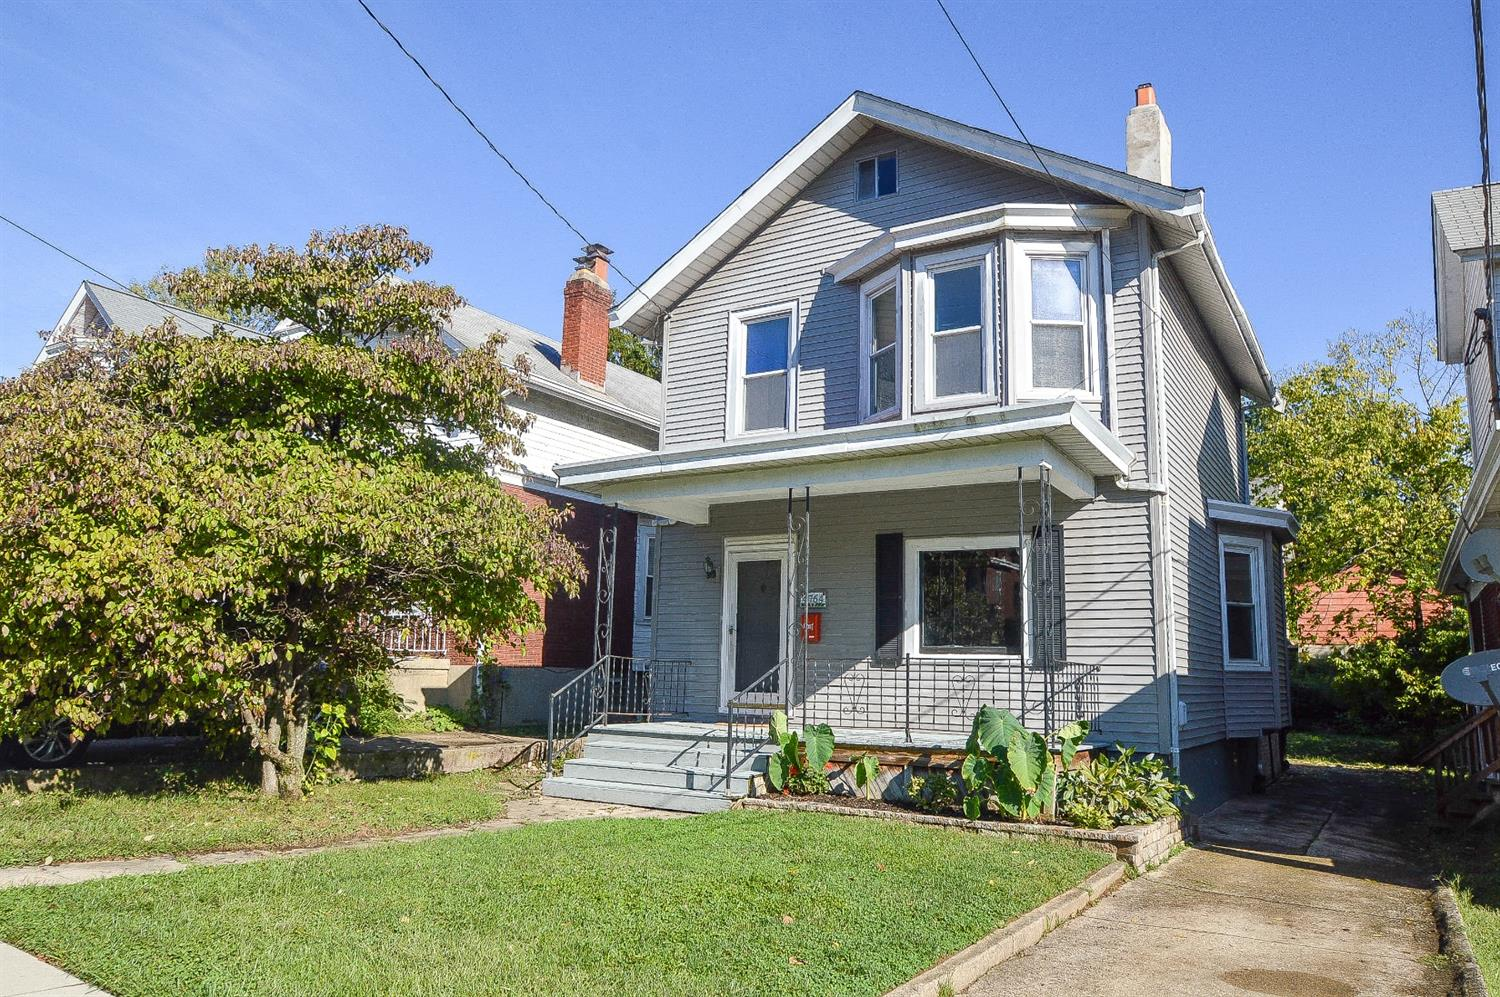 4764 Dale Avenue, Cincinnati, Ohio 45238, 3 Bedrooms Bedrooms, 6 Rooms Rooms,1 BathroomBathrooms,Single Family Residence,For Sale,Dale,1719273